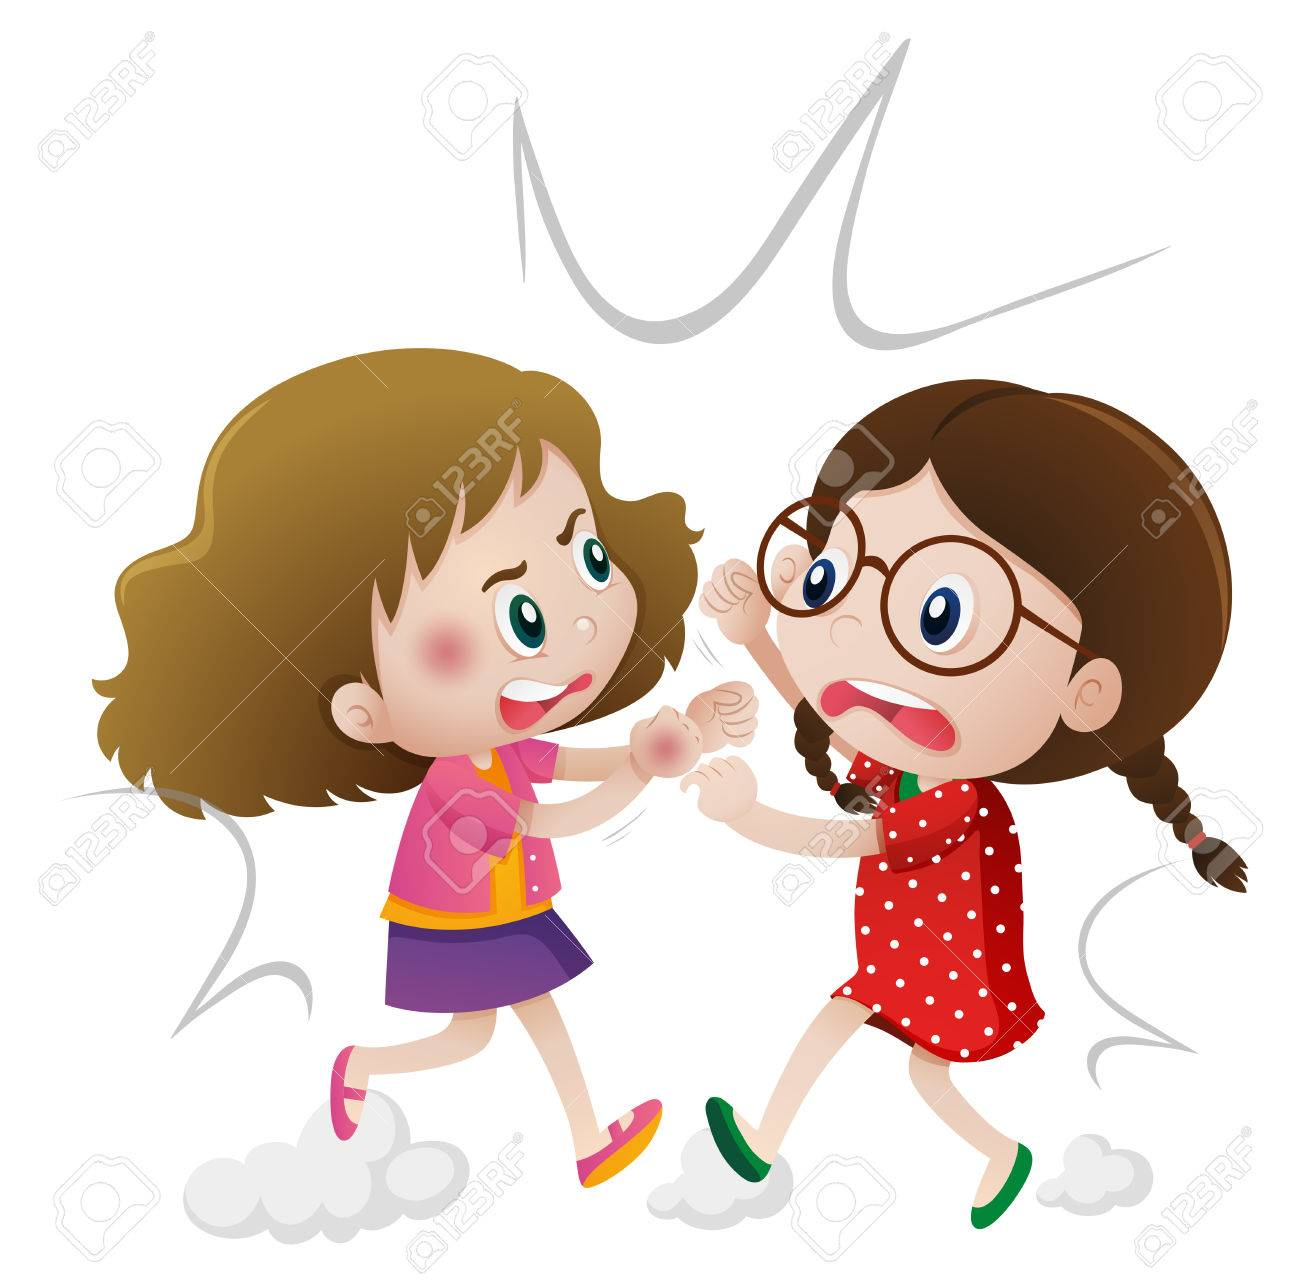 1300x1283 Two Angry Girls Fighting Illus-1300x1283 Two Angry Girls Fighting Illustration Royalty Free Cliparts-3